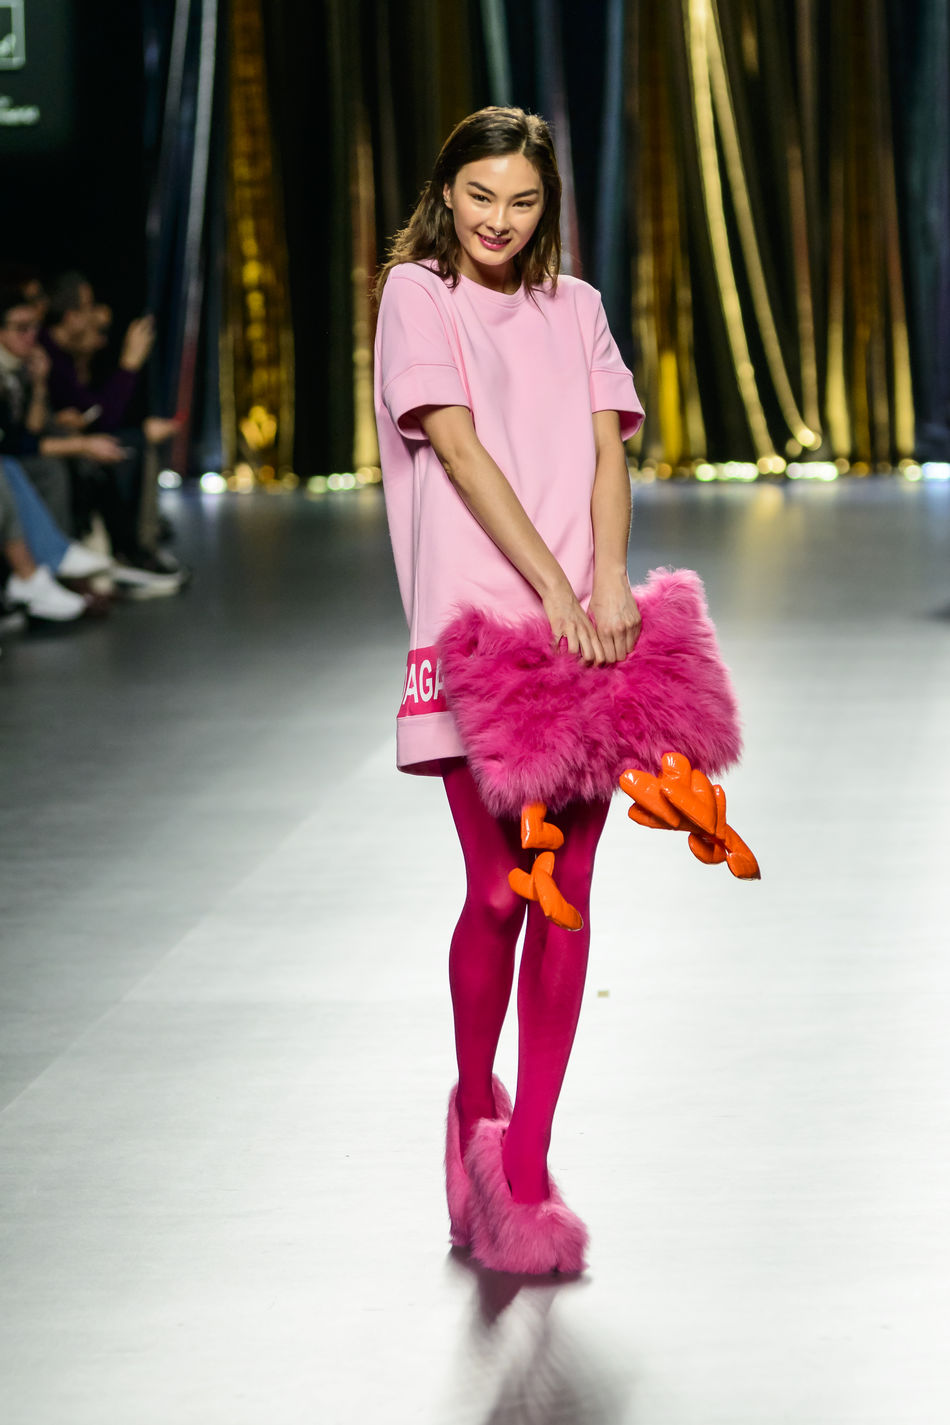 Agatha Ruiz De La Prada - Merecedes Benz Fashion Week Madrid 2016 - Autumn-Winter 2016-2017. Casual Clothing Catwalk Clothes Editorial  Fashion Fashion Show Fashion Week Front View Fun Happiness Lifestyles Looking At Camera Mbfw Mbfw2016 Mercedes Benz Fashion Week Models Portrait Real People Standing Woman Women Young Adult Young Women